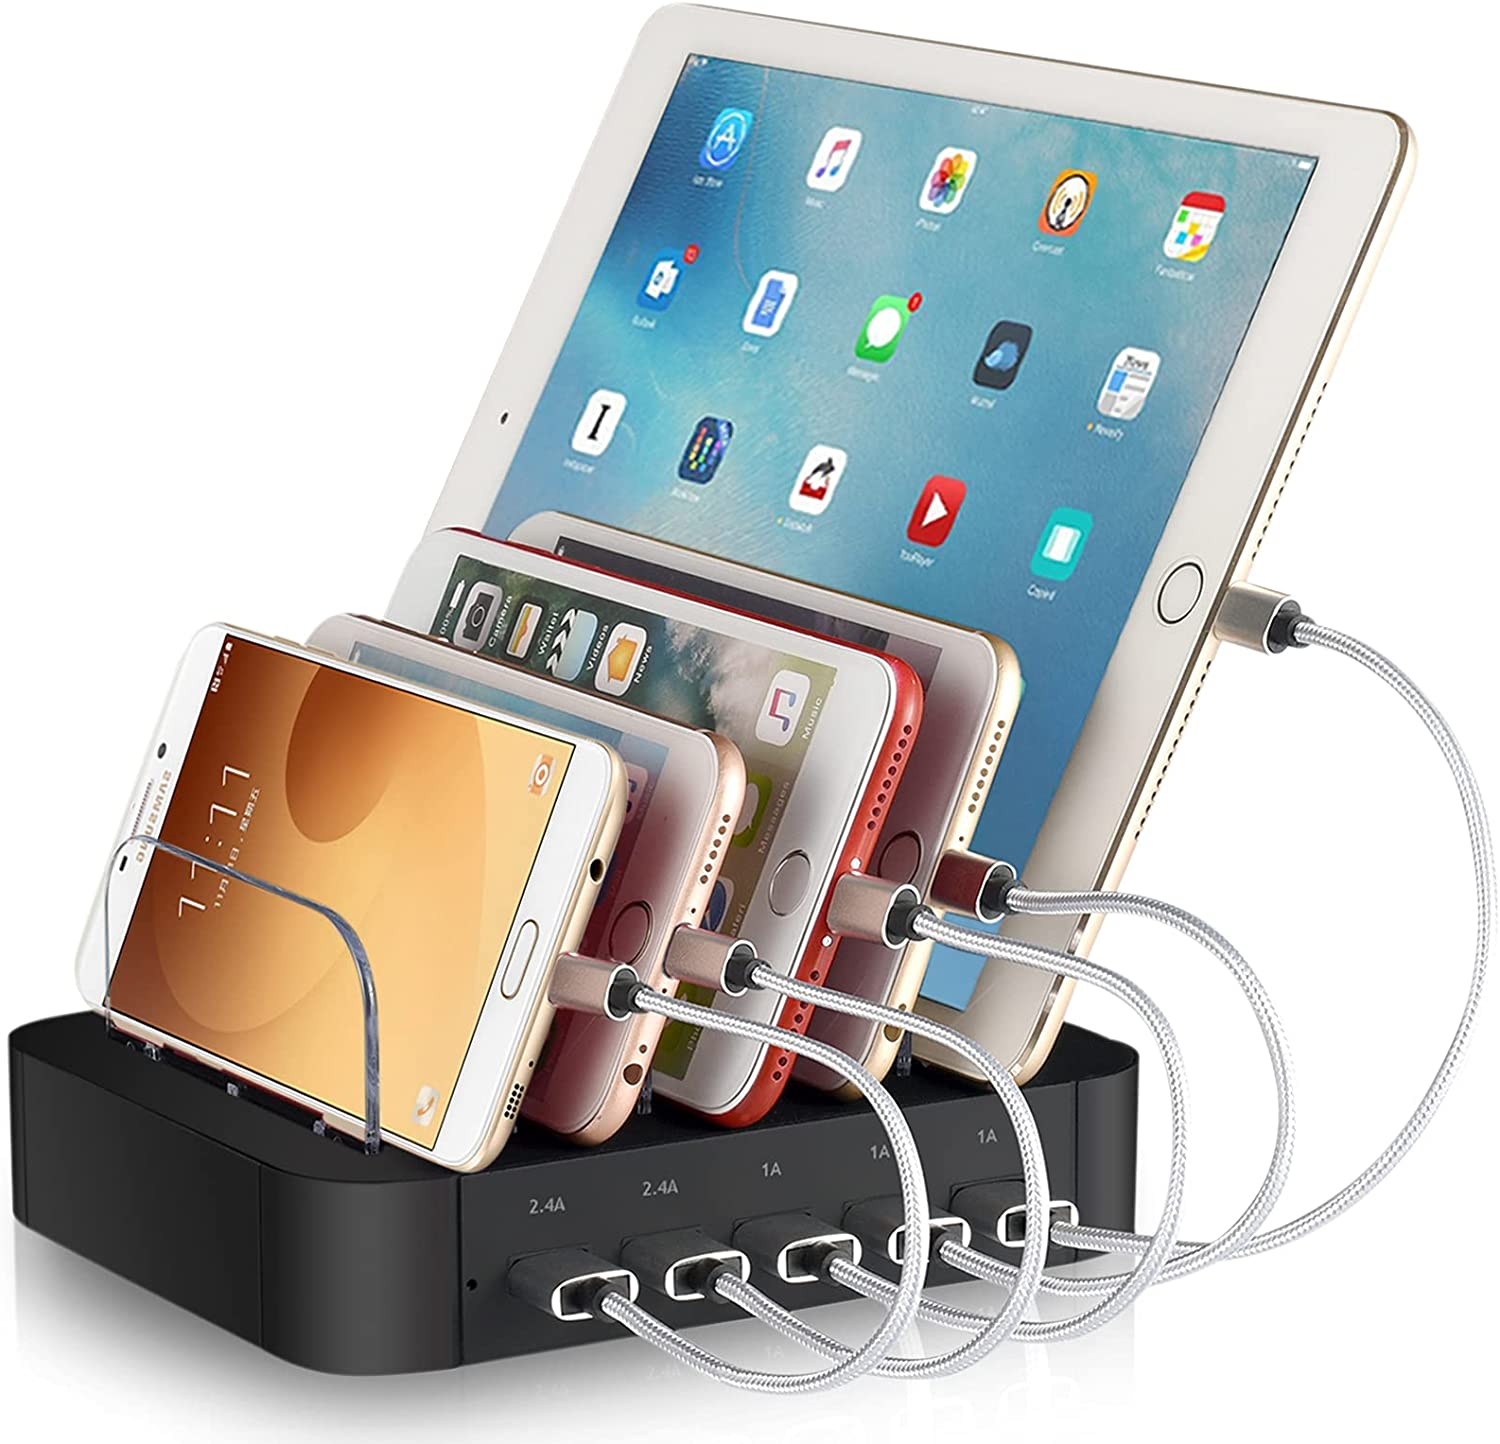 REXIAO 5 Port Multi USB Charger Station Electronic Charging Dock for Multiple Devices, Cell Phone Charger Stand Compatible with iPhone ipad and Other Phones Tablet (5 Short Cable Included